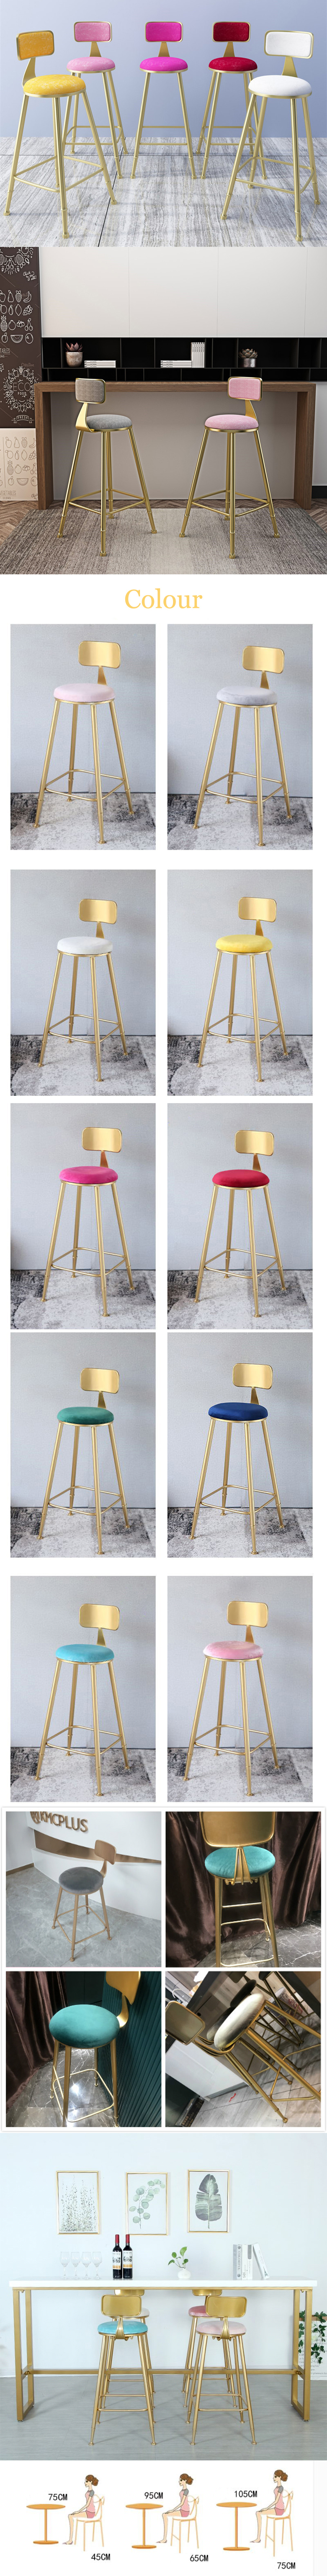 Rose Gold Metal Cheap Velvet Bar Counter Stool Home Modern Minimalist Casual Cafe High Bar Chairs Furniture For Bar Table Sale